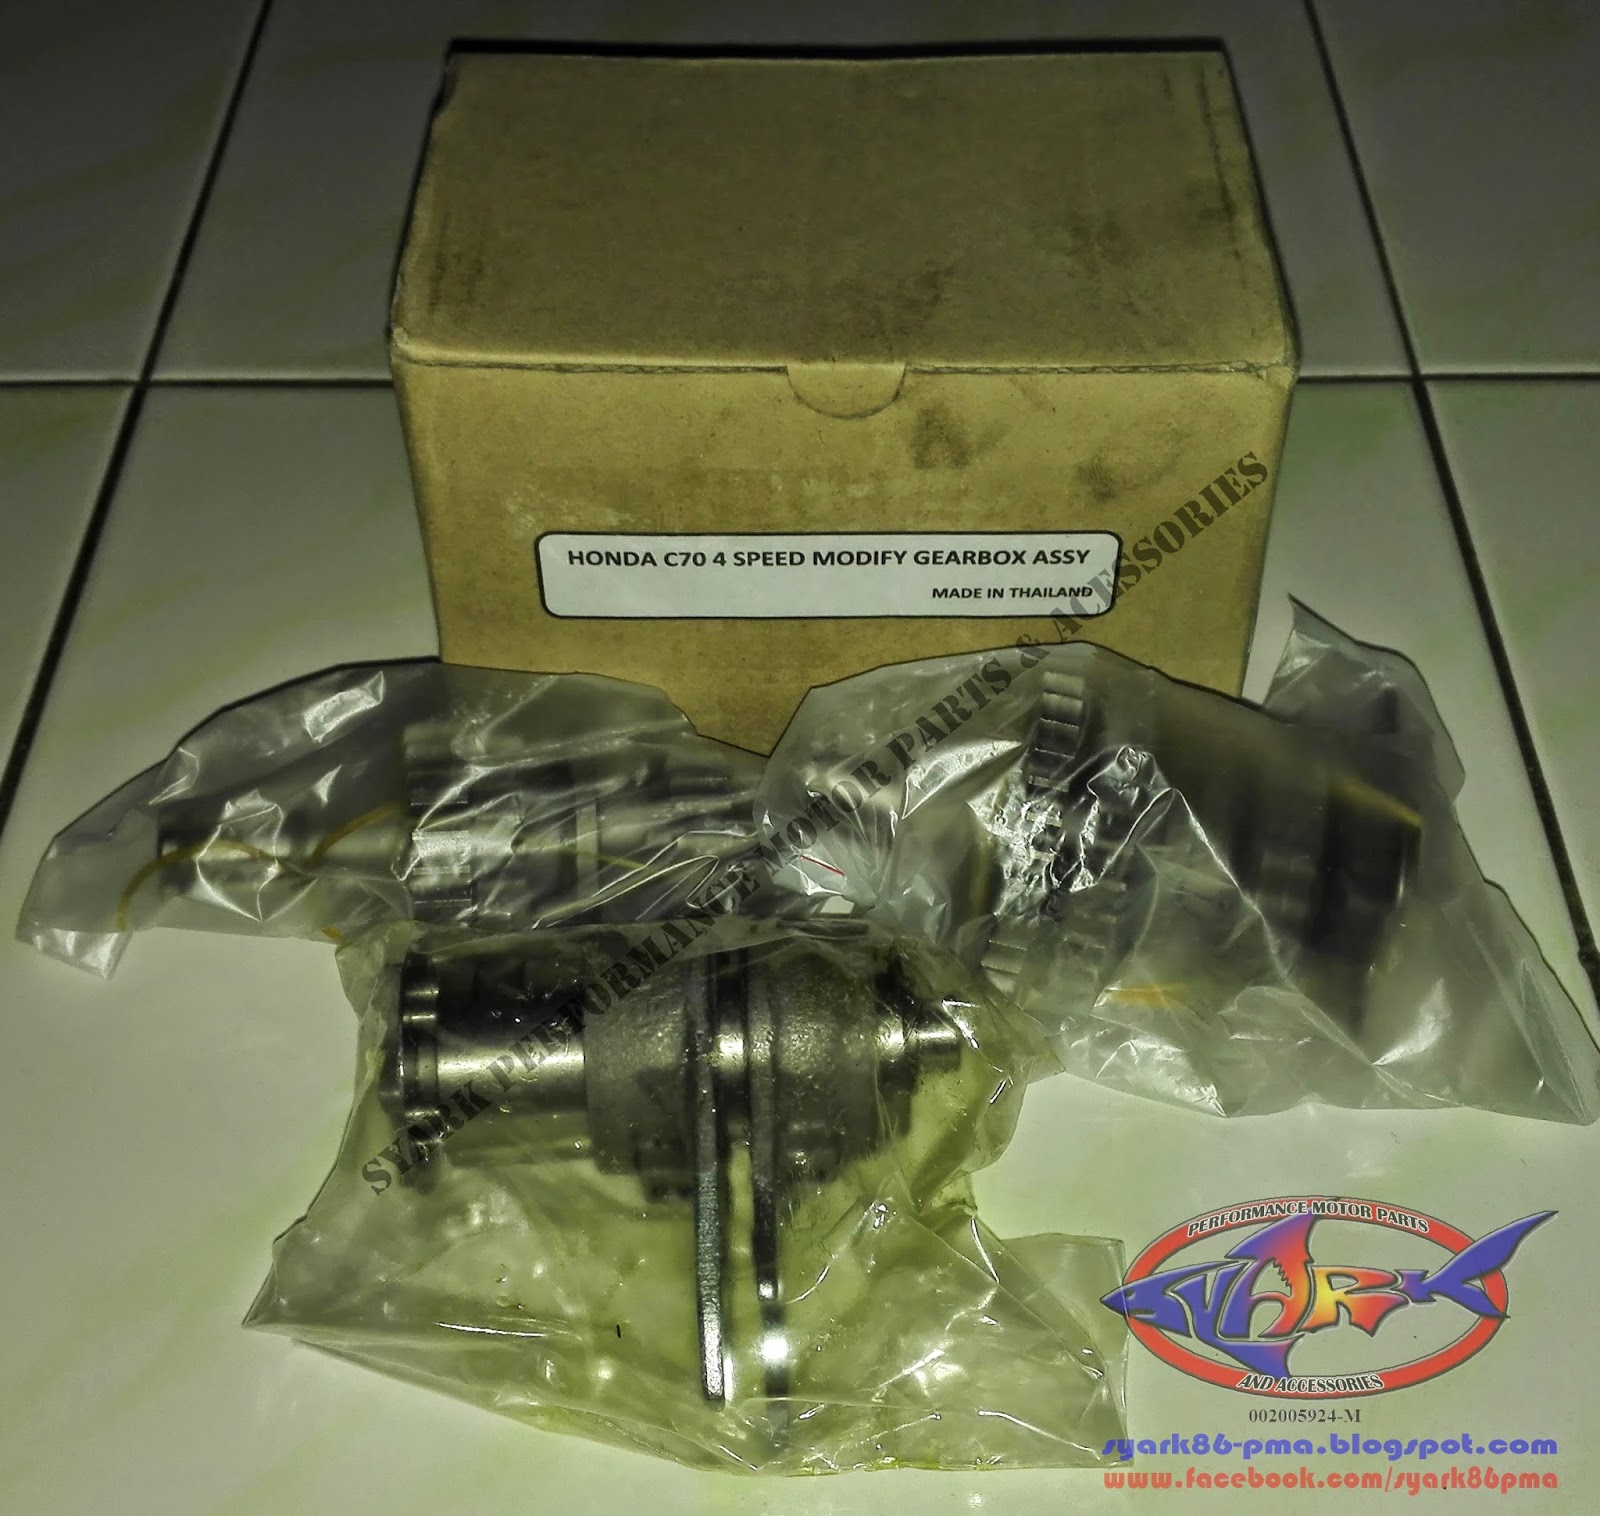 Syark Performance Motor Parts And Accessories Online Shop Est 1 Set Honda C70 New 4 Speed Modify Transmission Gearbox For